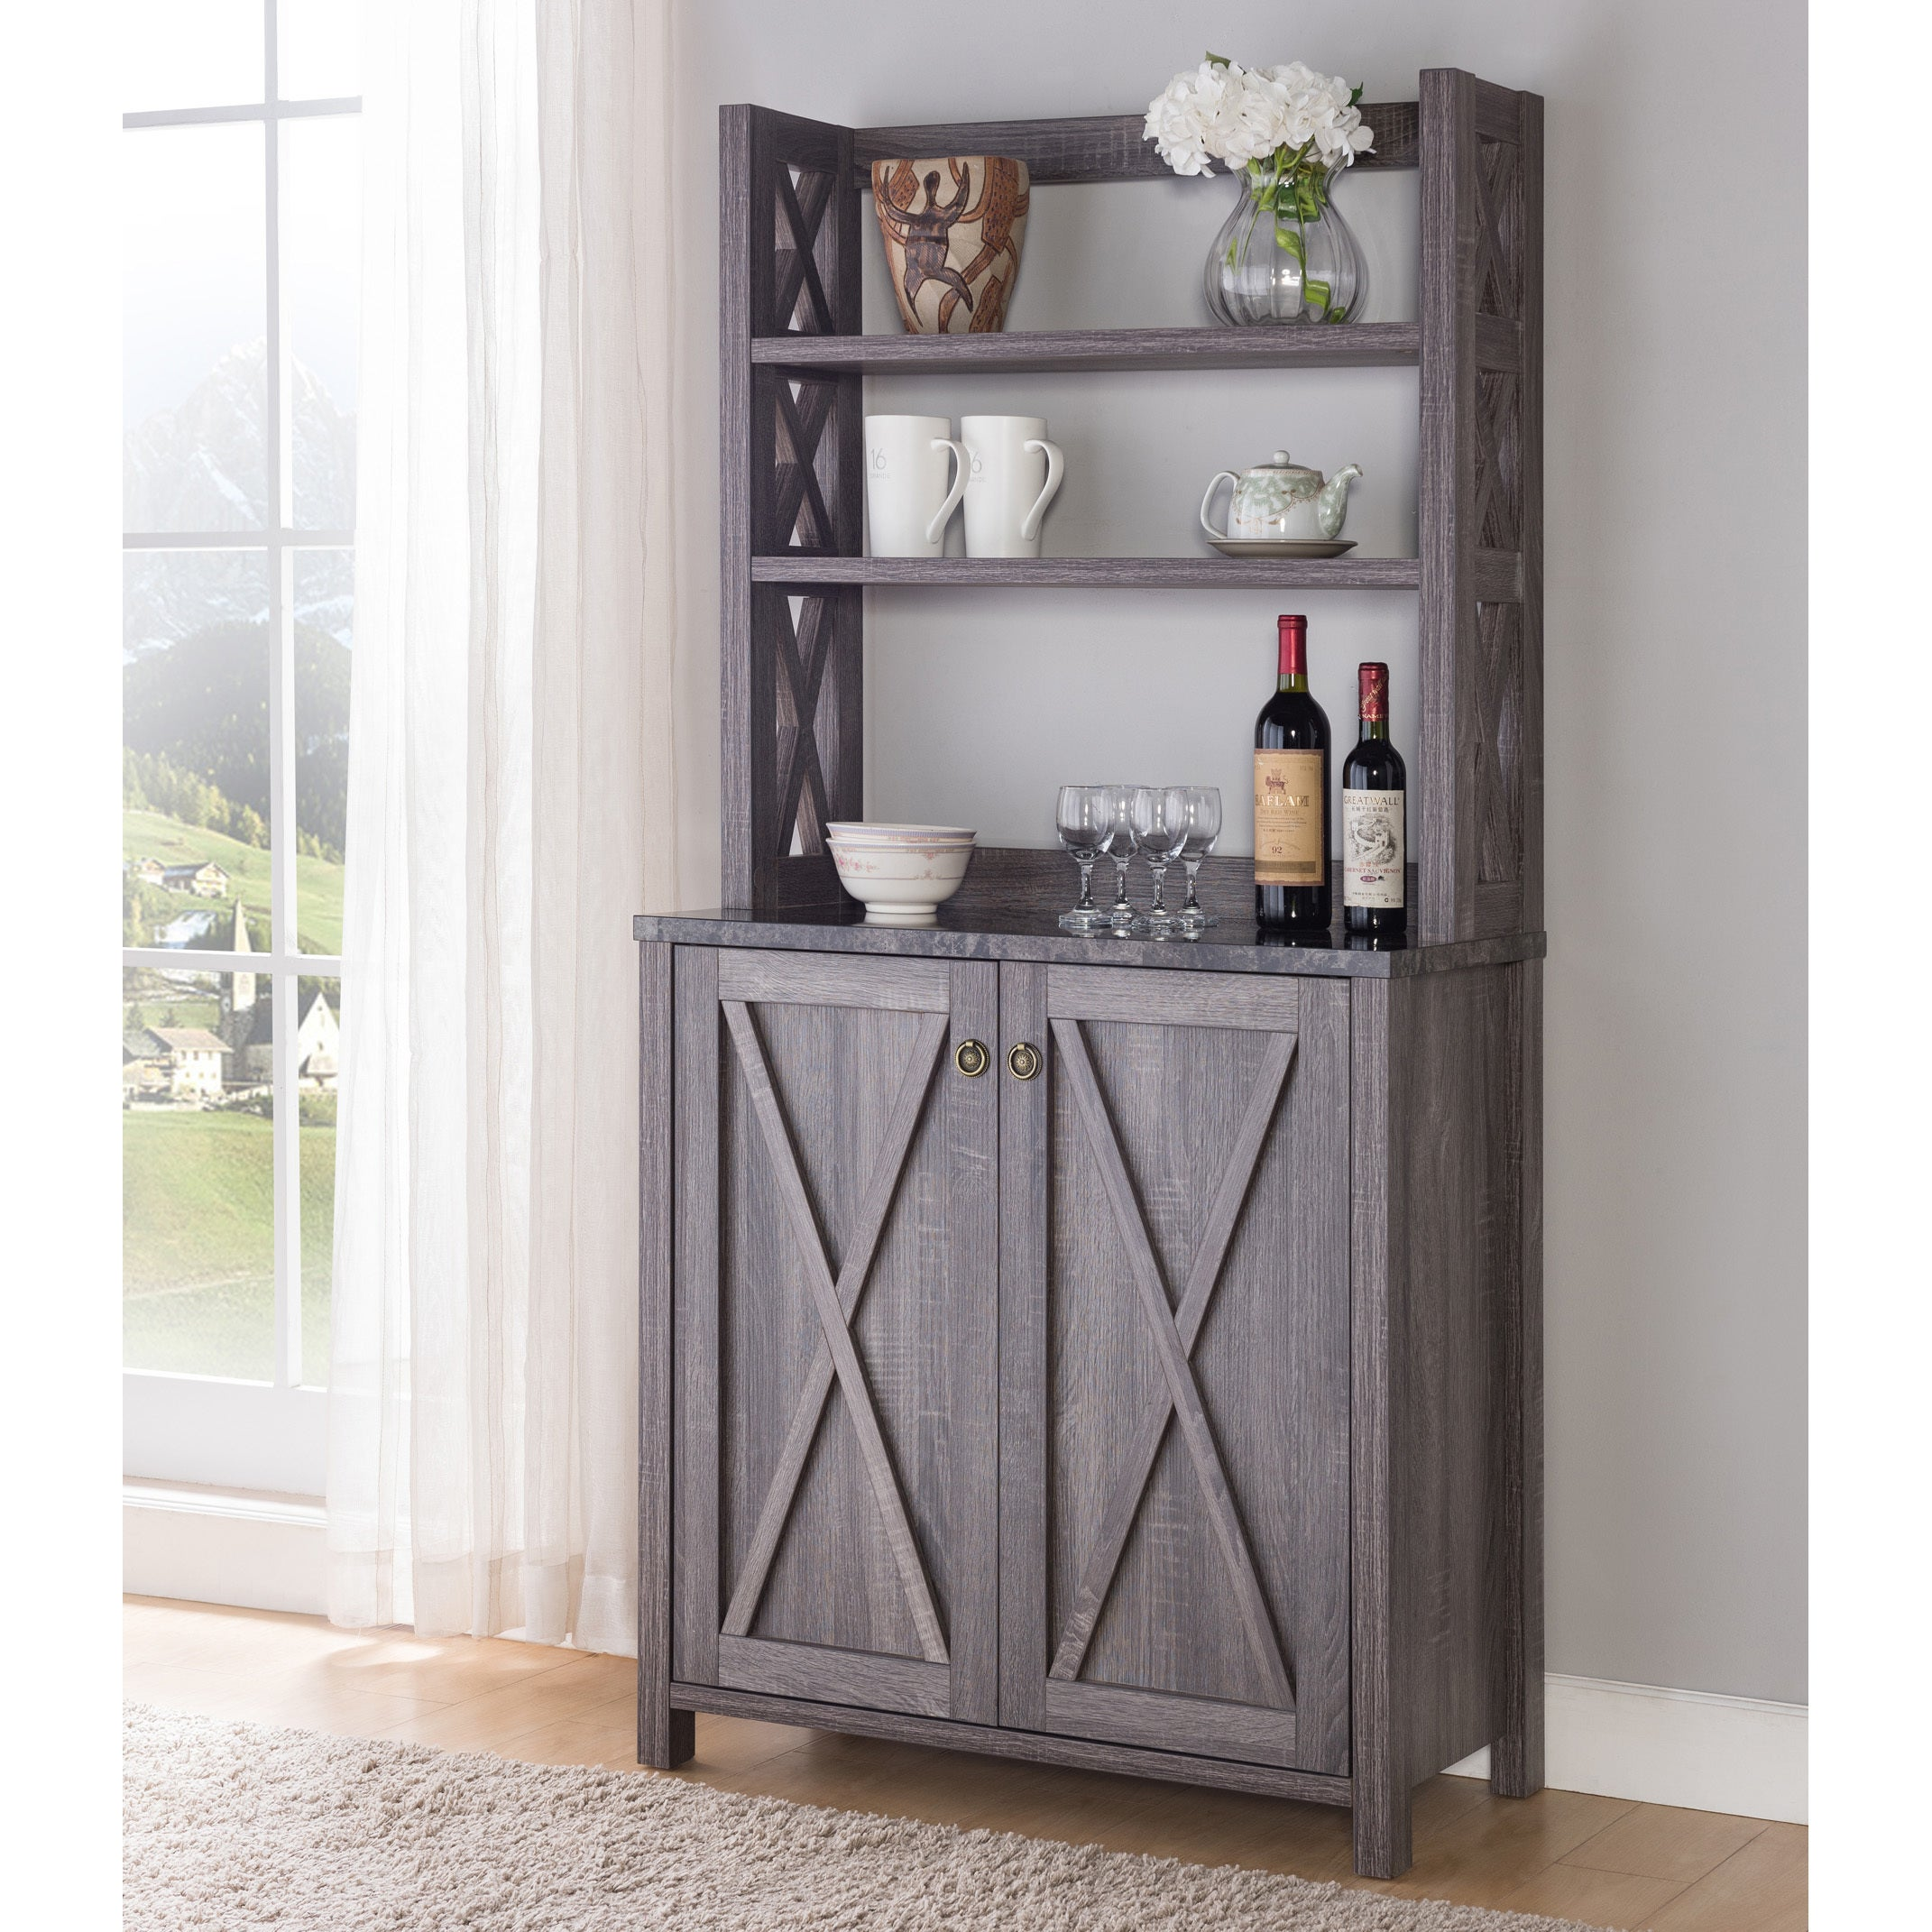 Grey Distressed Kitchen Cabinets: Furniture For Microwave